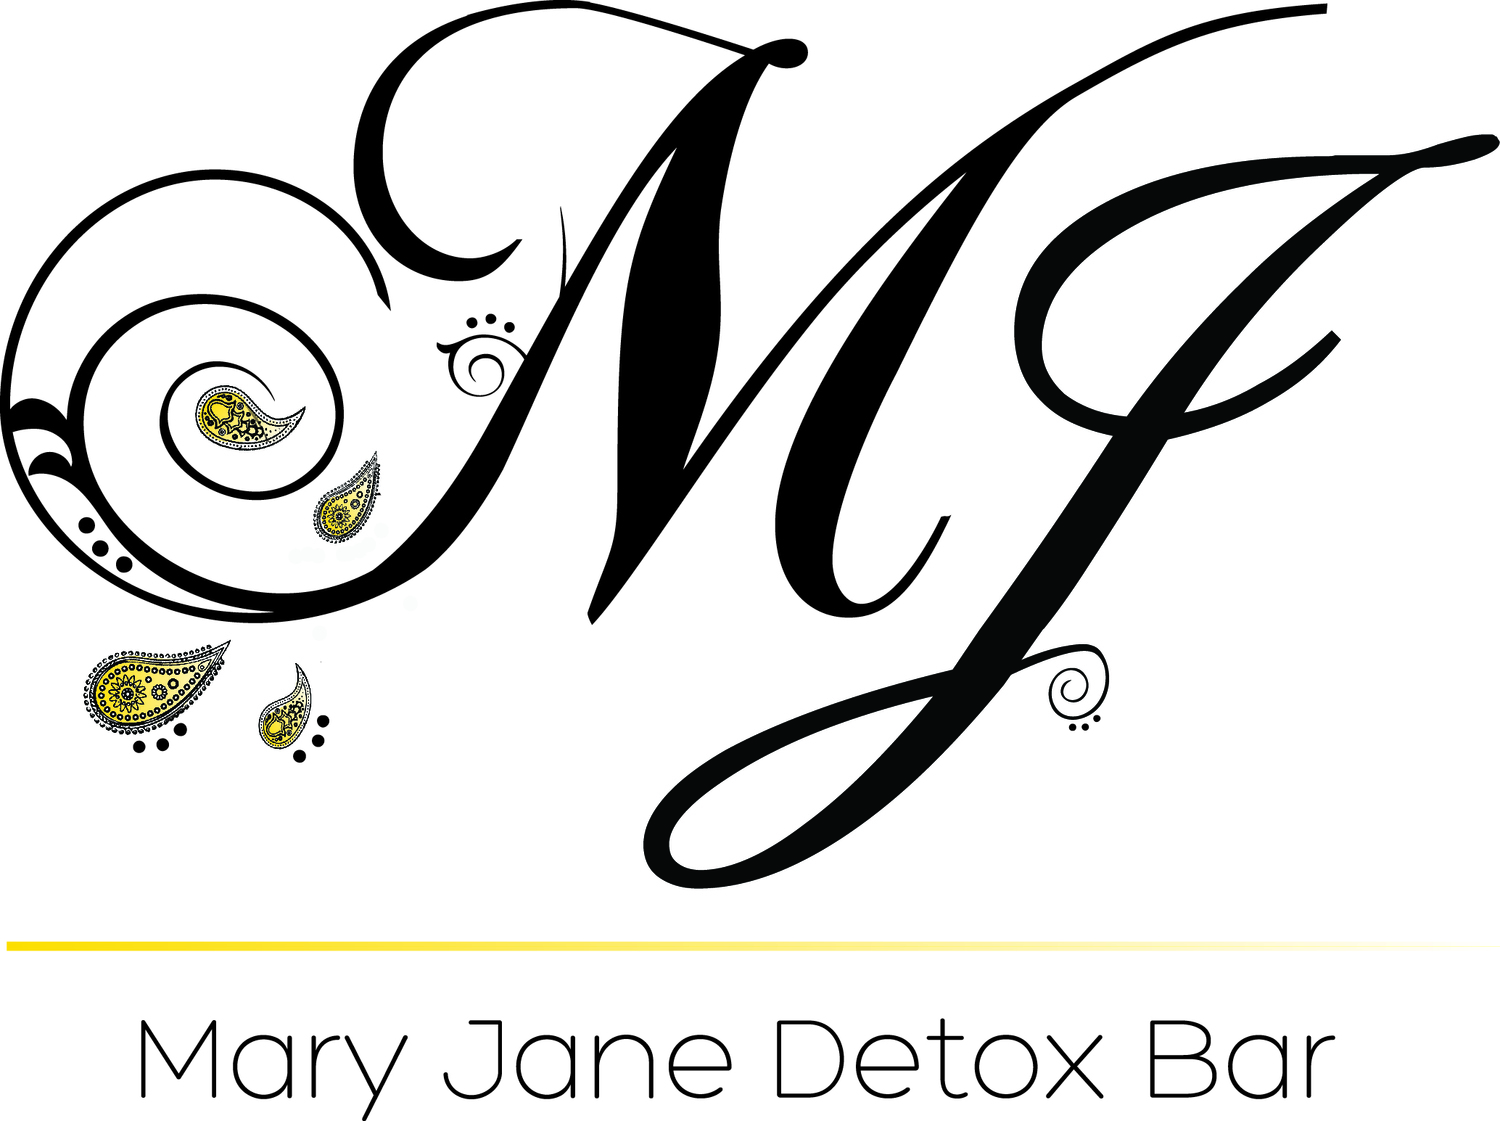 Mary Jane Detox Bar